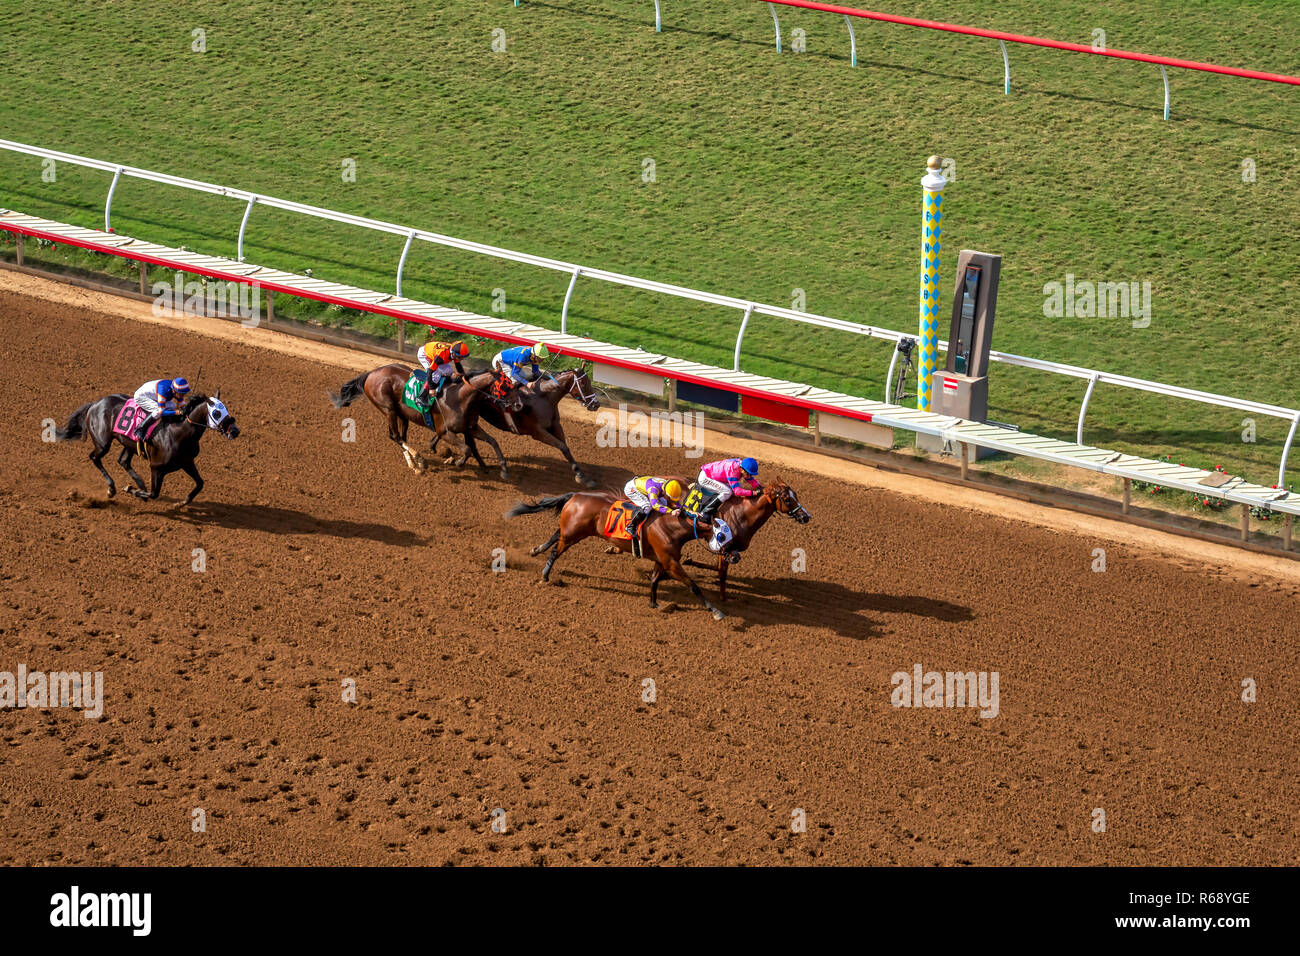 Race horses about to cross the finish line in Del Mar, California - Stock Image